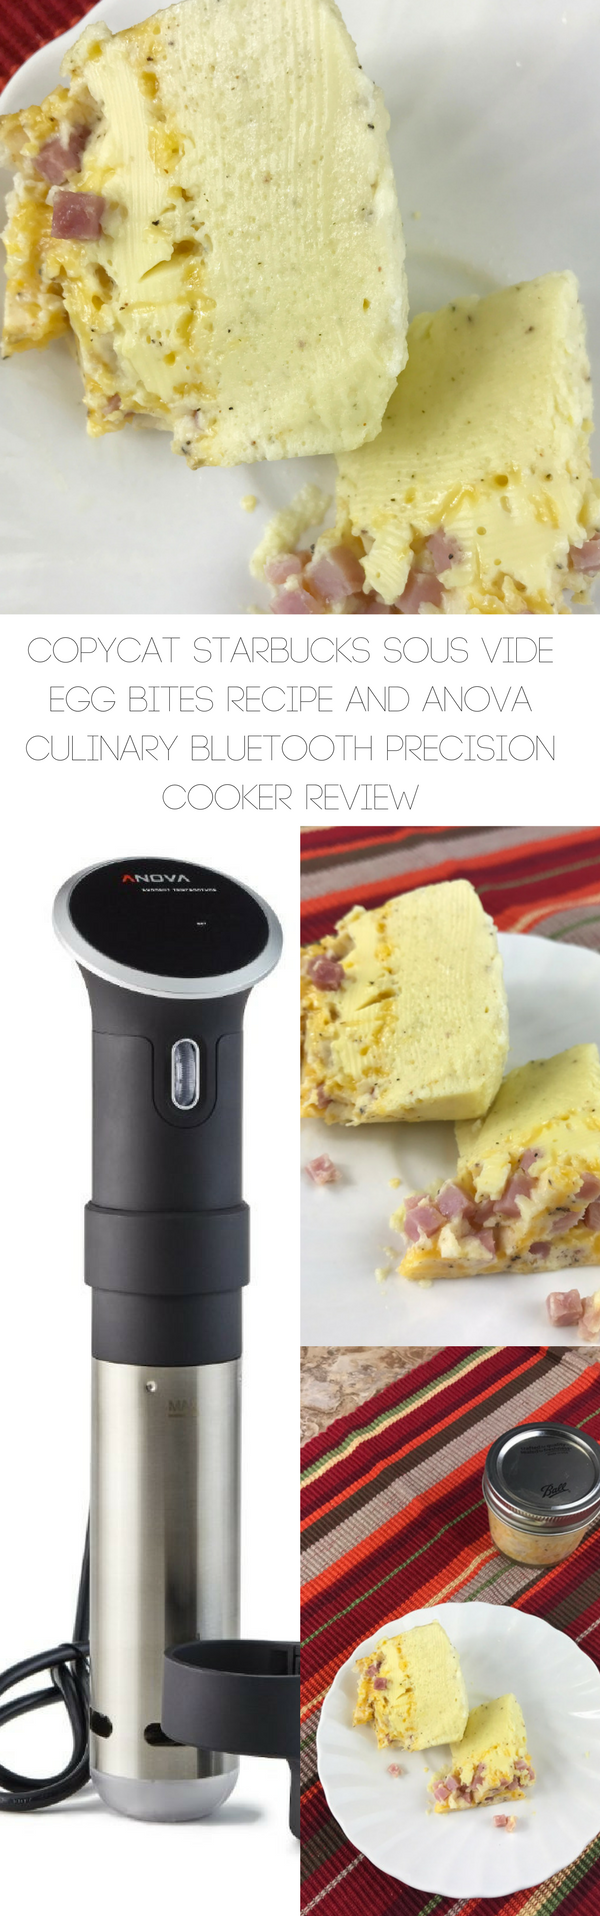 Copycat Starbucks Sous Vide Egg Bites Recipe and Anova Culinary Bluetooth Precision Cooker Review